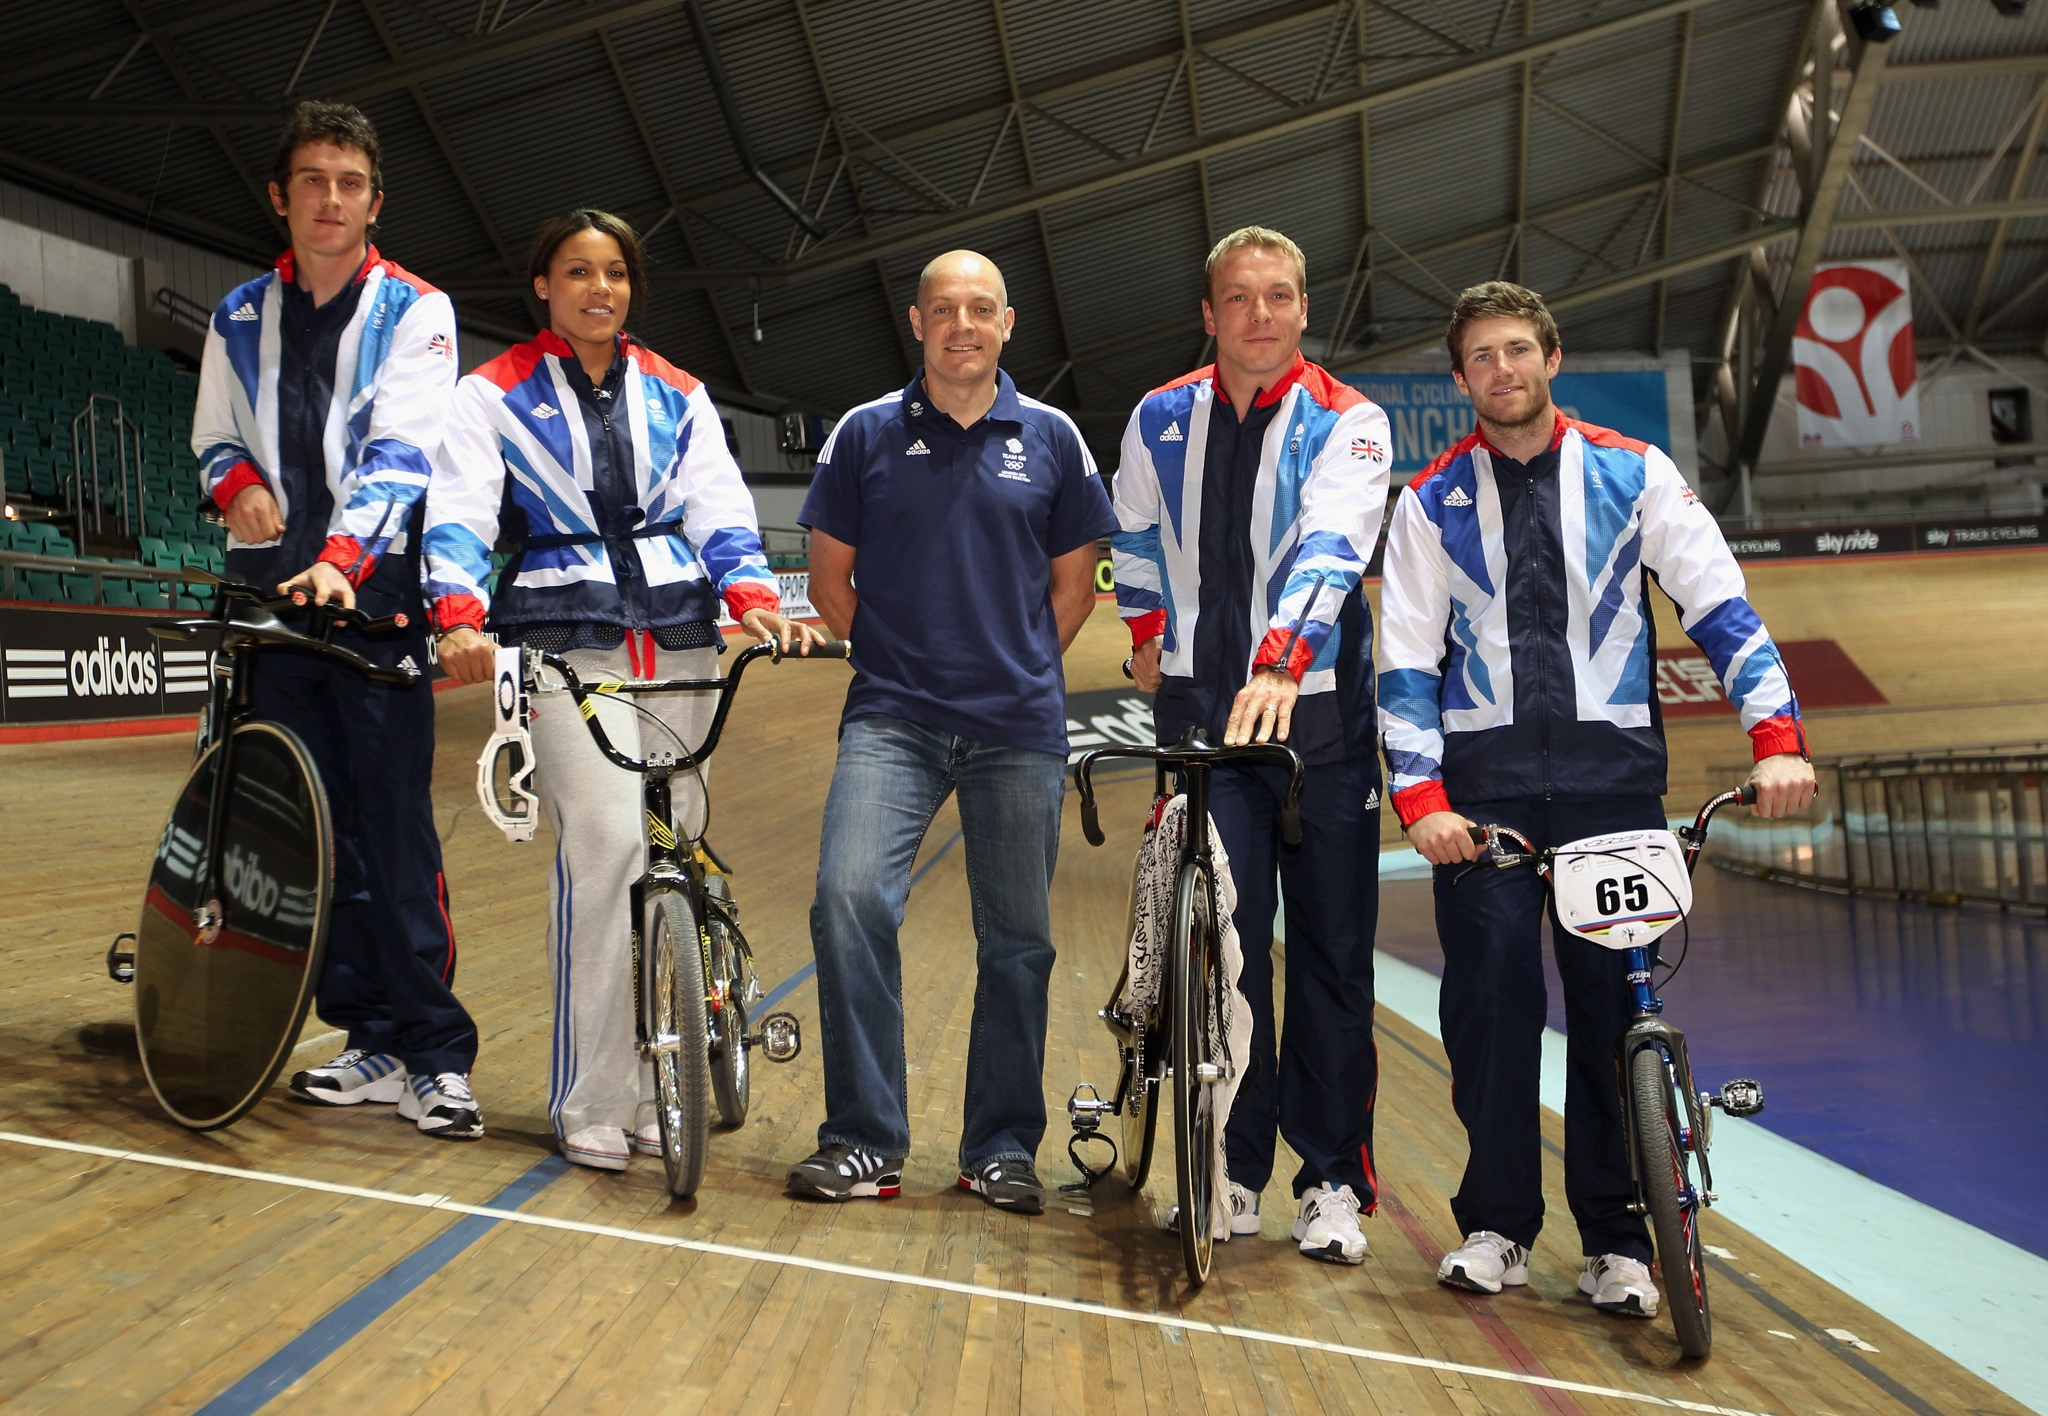 Photo: Team GB athletes Geraint Thomas, Shanaze Reade, Team GB Cycling Team Leader Dave Brailsford, Sir Chris Hoy and Liam Phillips pose on the velodrome during the Team GB Cycling Athletes Announcement (Photo by Bryn Lennon/Getty Images)